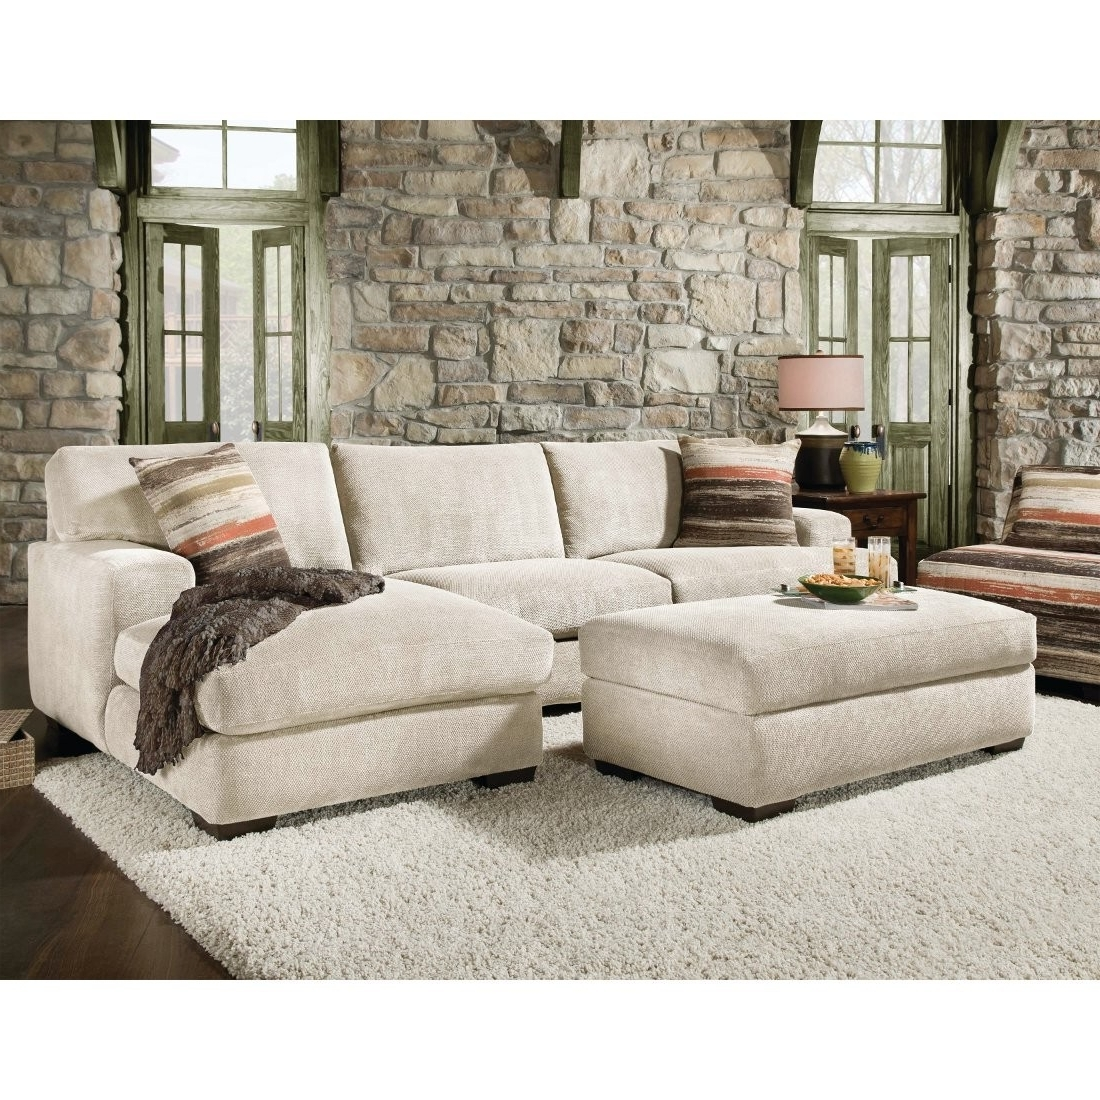 Most Popular Oversized Sectional Sofa Idea — Awesome Homes : Super Comfortable In Oversized Sectional Sofas With Chaise (View 5 of 15)